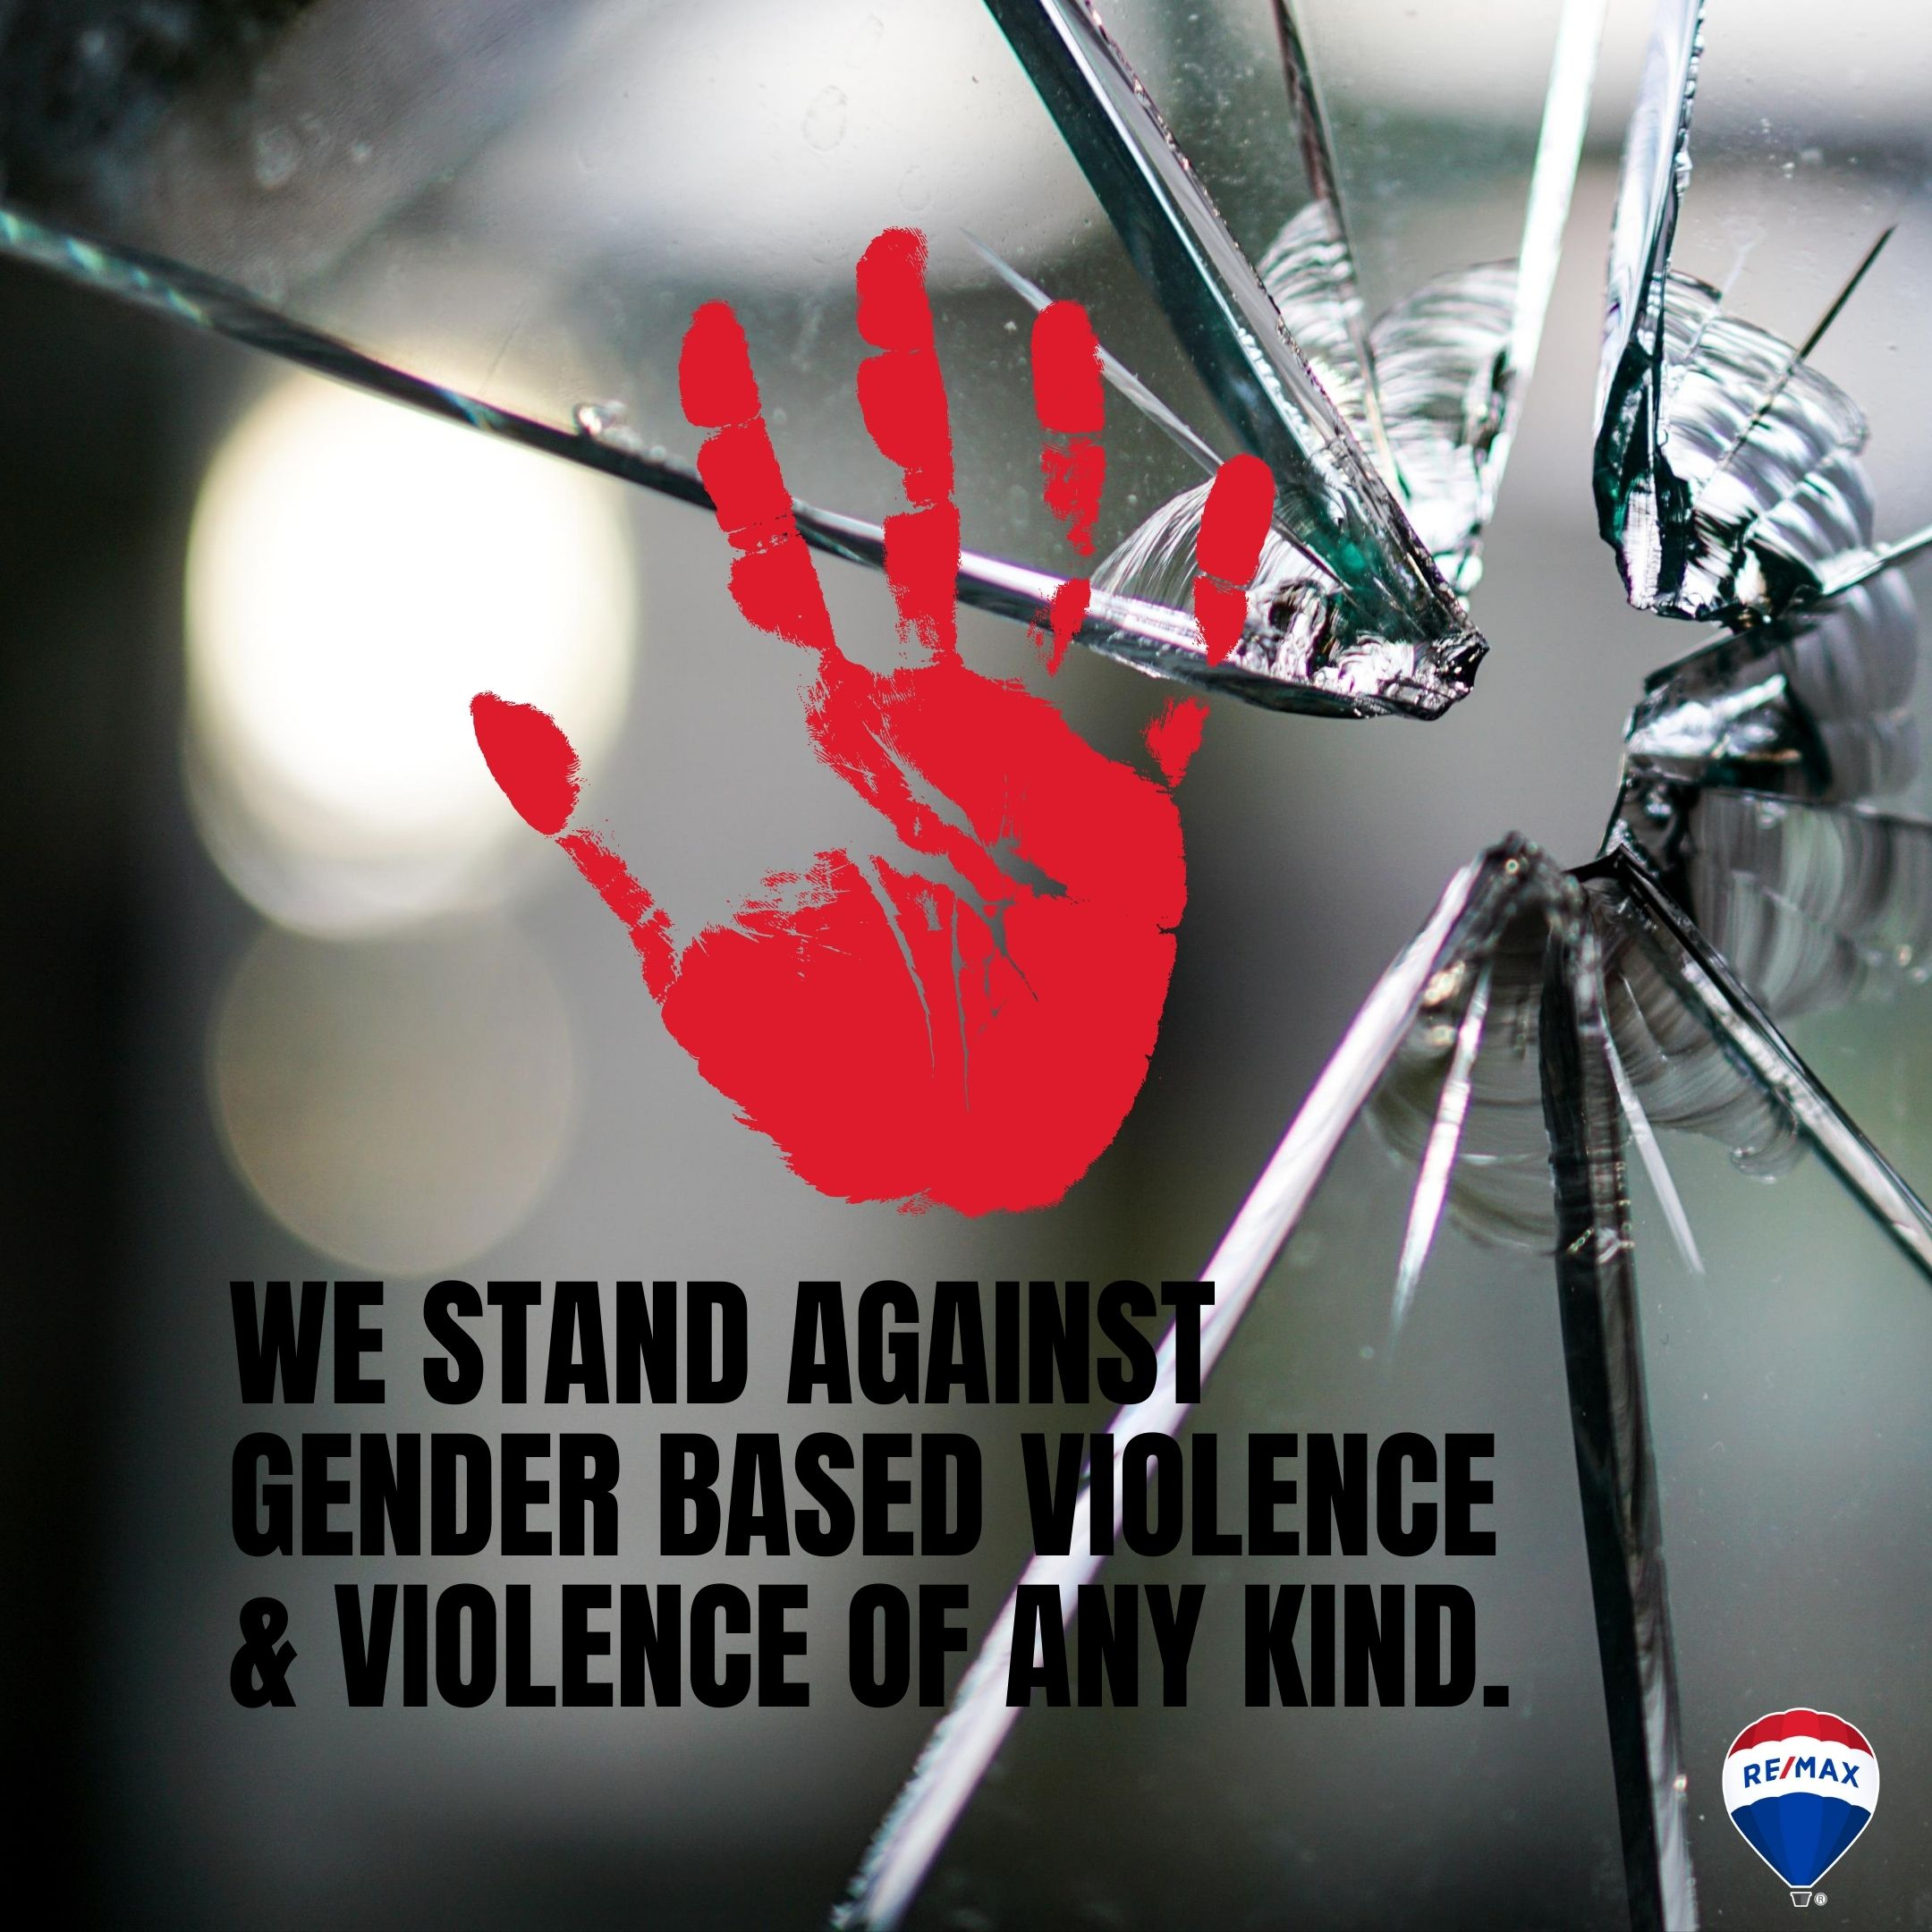 Zero-Tolerance Stance on Gender-Based Violence